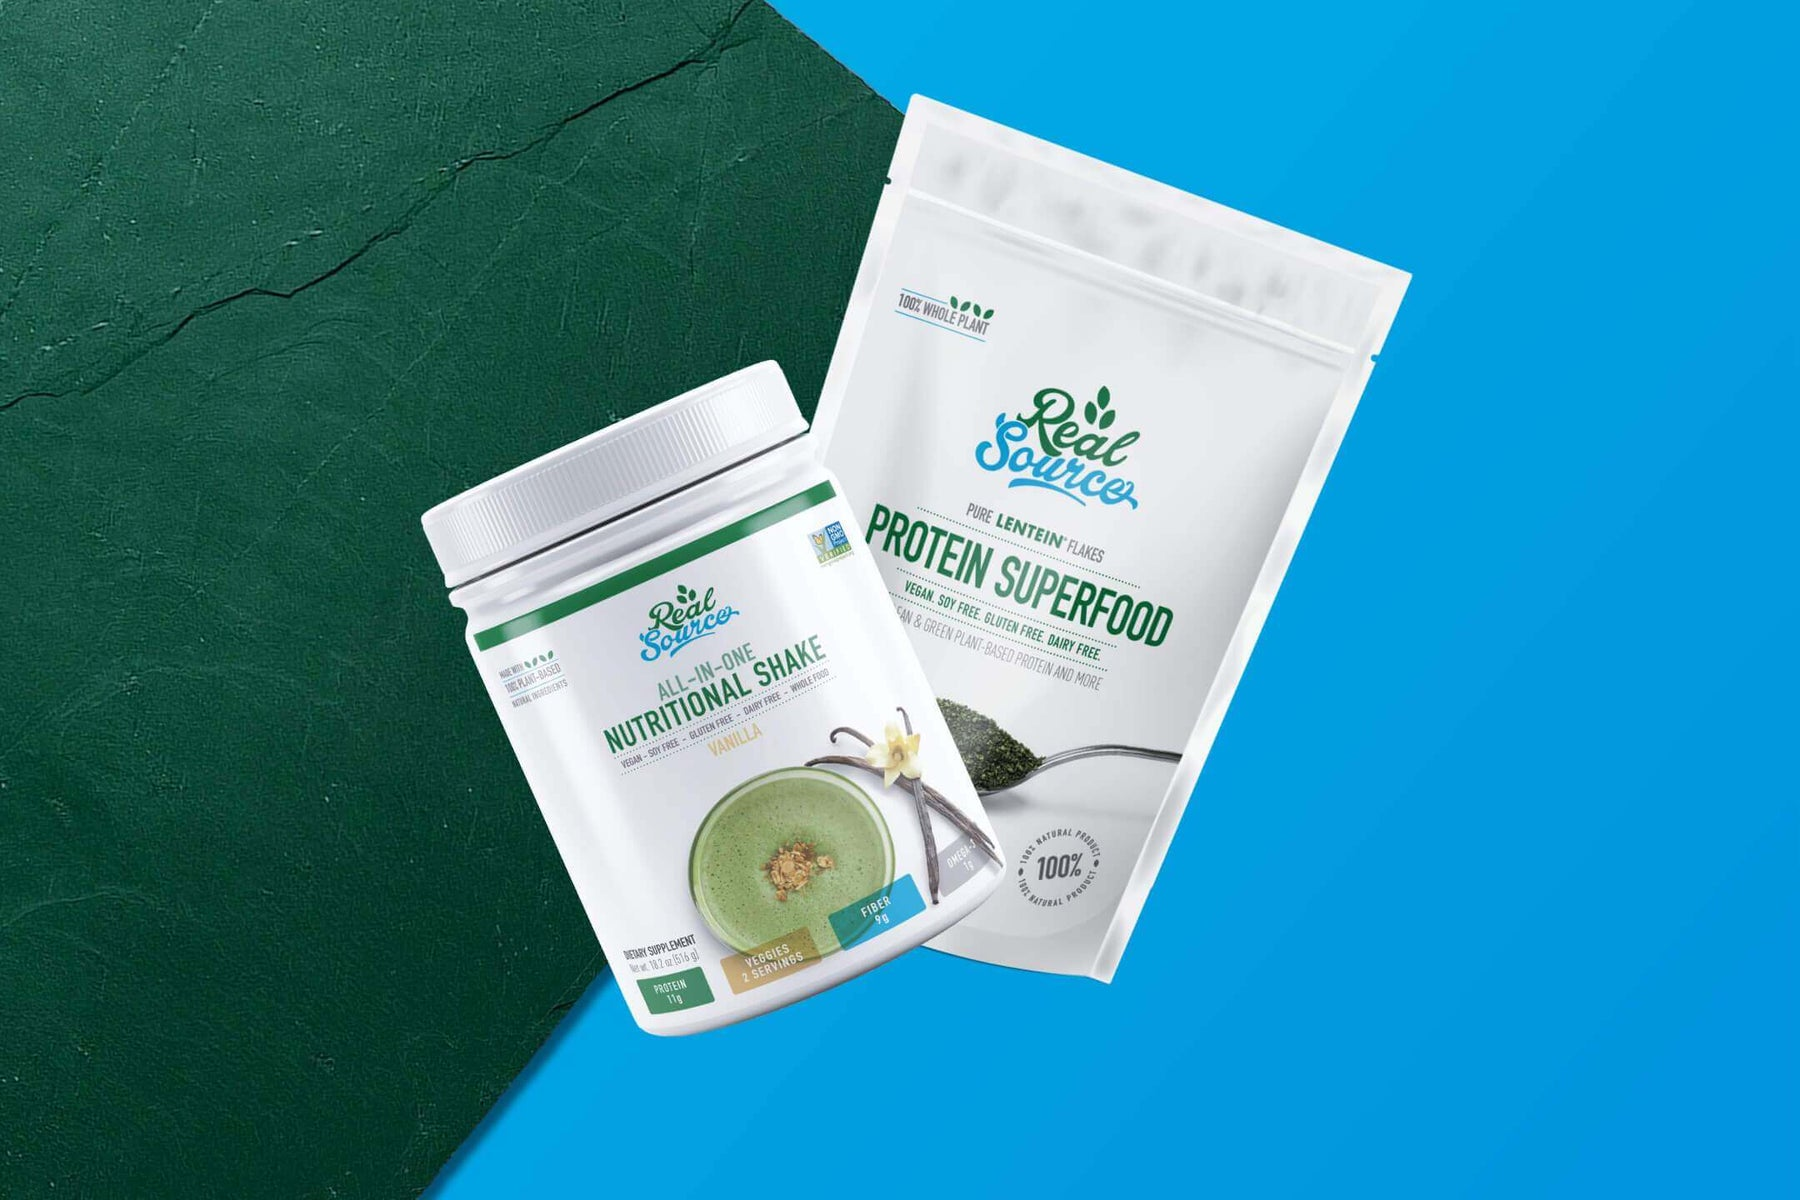 Green Nutrition - Made with LENTEIN® and Pure LENTEIN Flake Protein Superfood